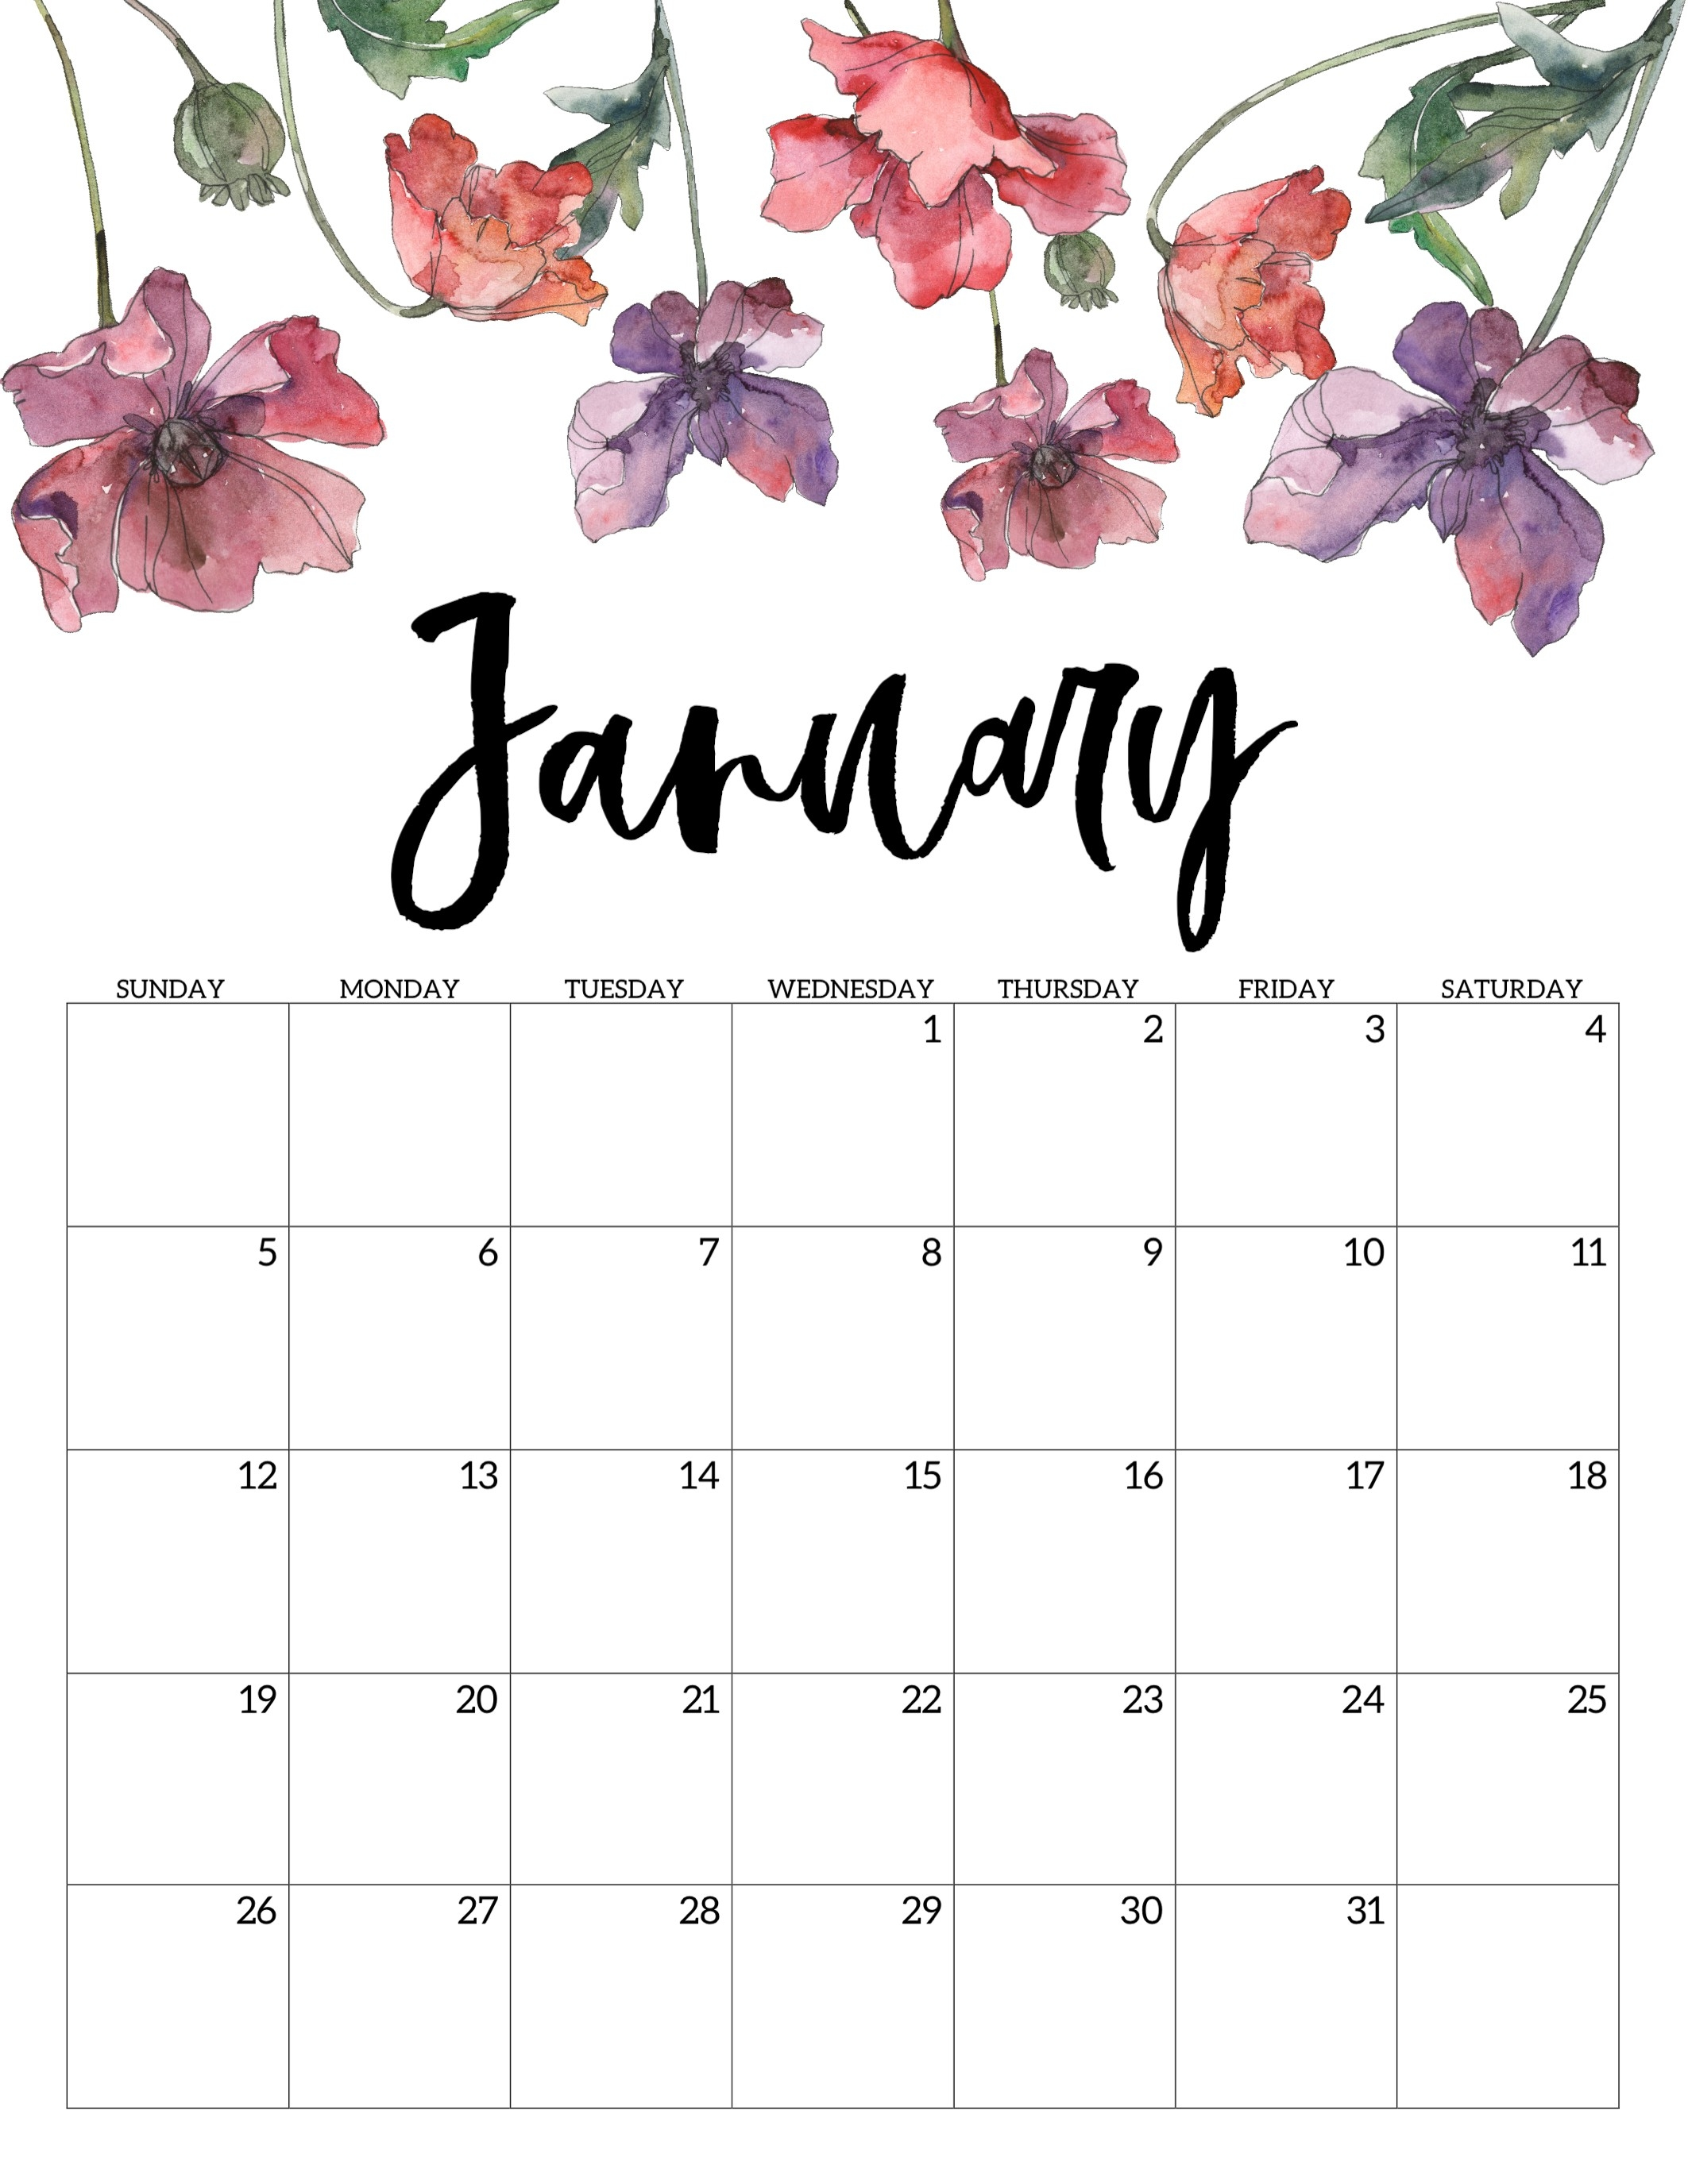 2020 Free Printable Calendar - Floral - Paper Trail Design  Printable 2020 Monthly Calendar Template Girly